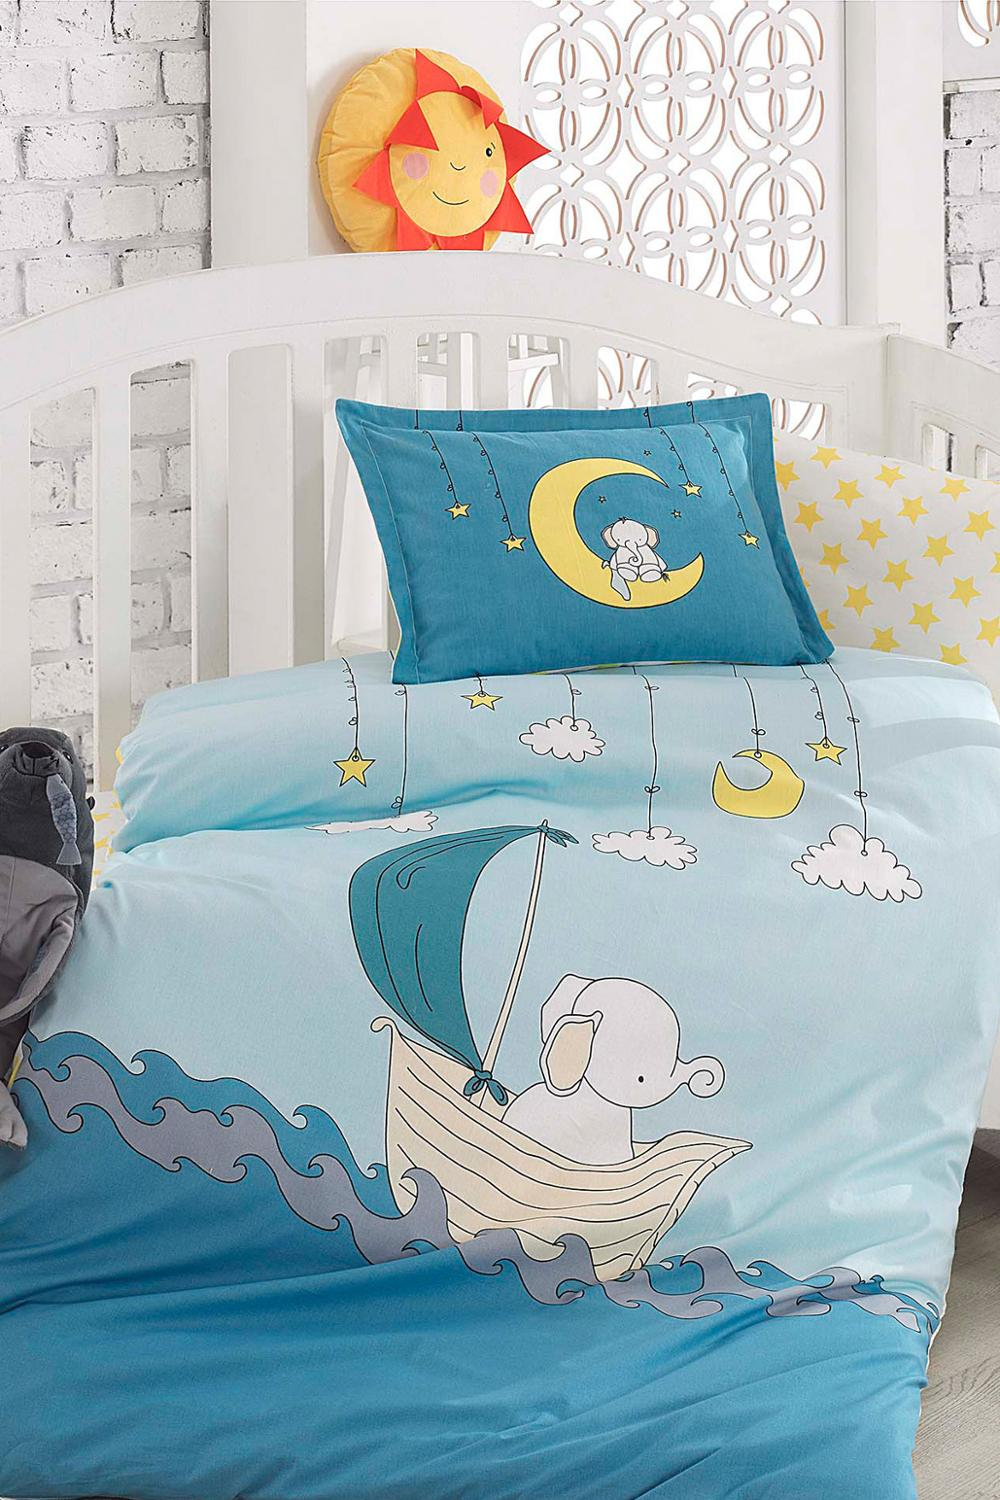 Lady Moda Elephant 4 Pcs Baby Bedding Set 100x150 Cm Crib Bedding Set 100% Cotton Cartoon Baby Bed Linen Set From Turkey